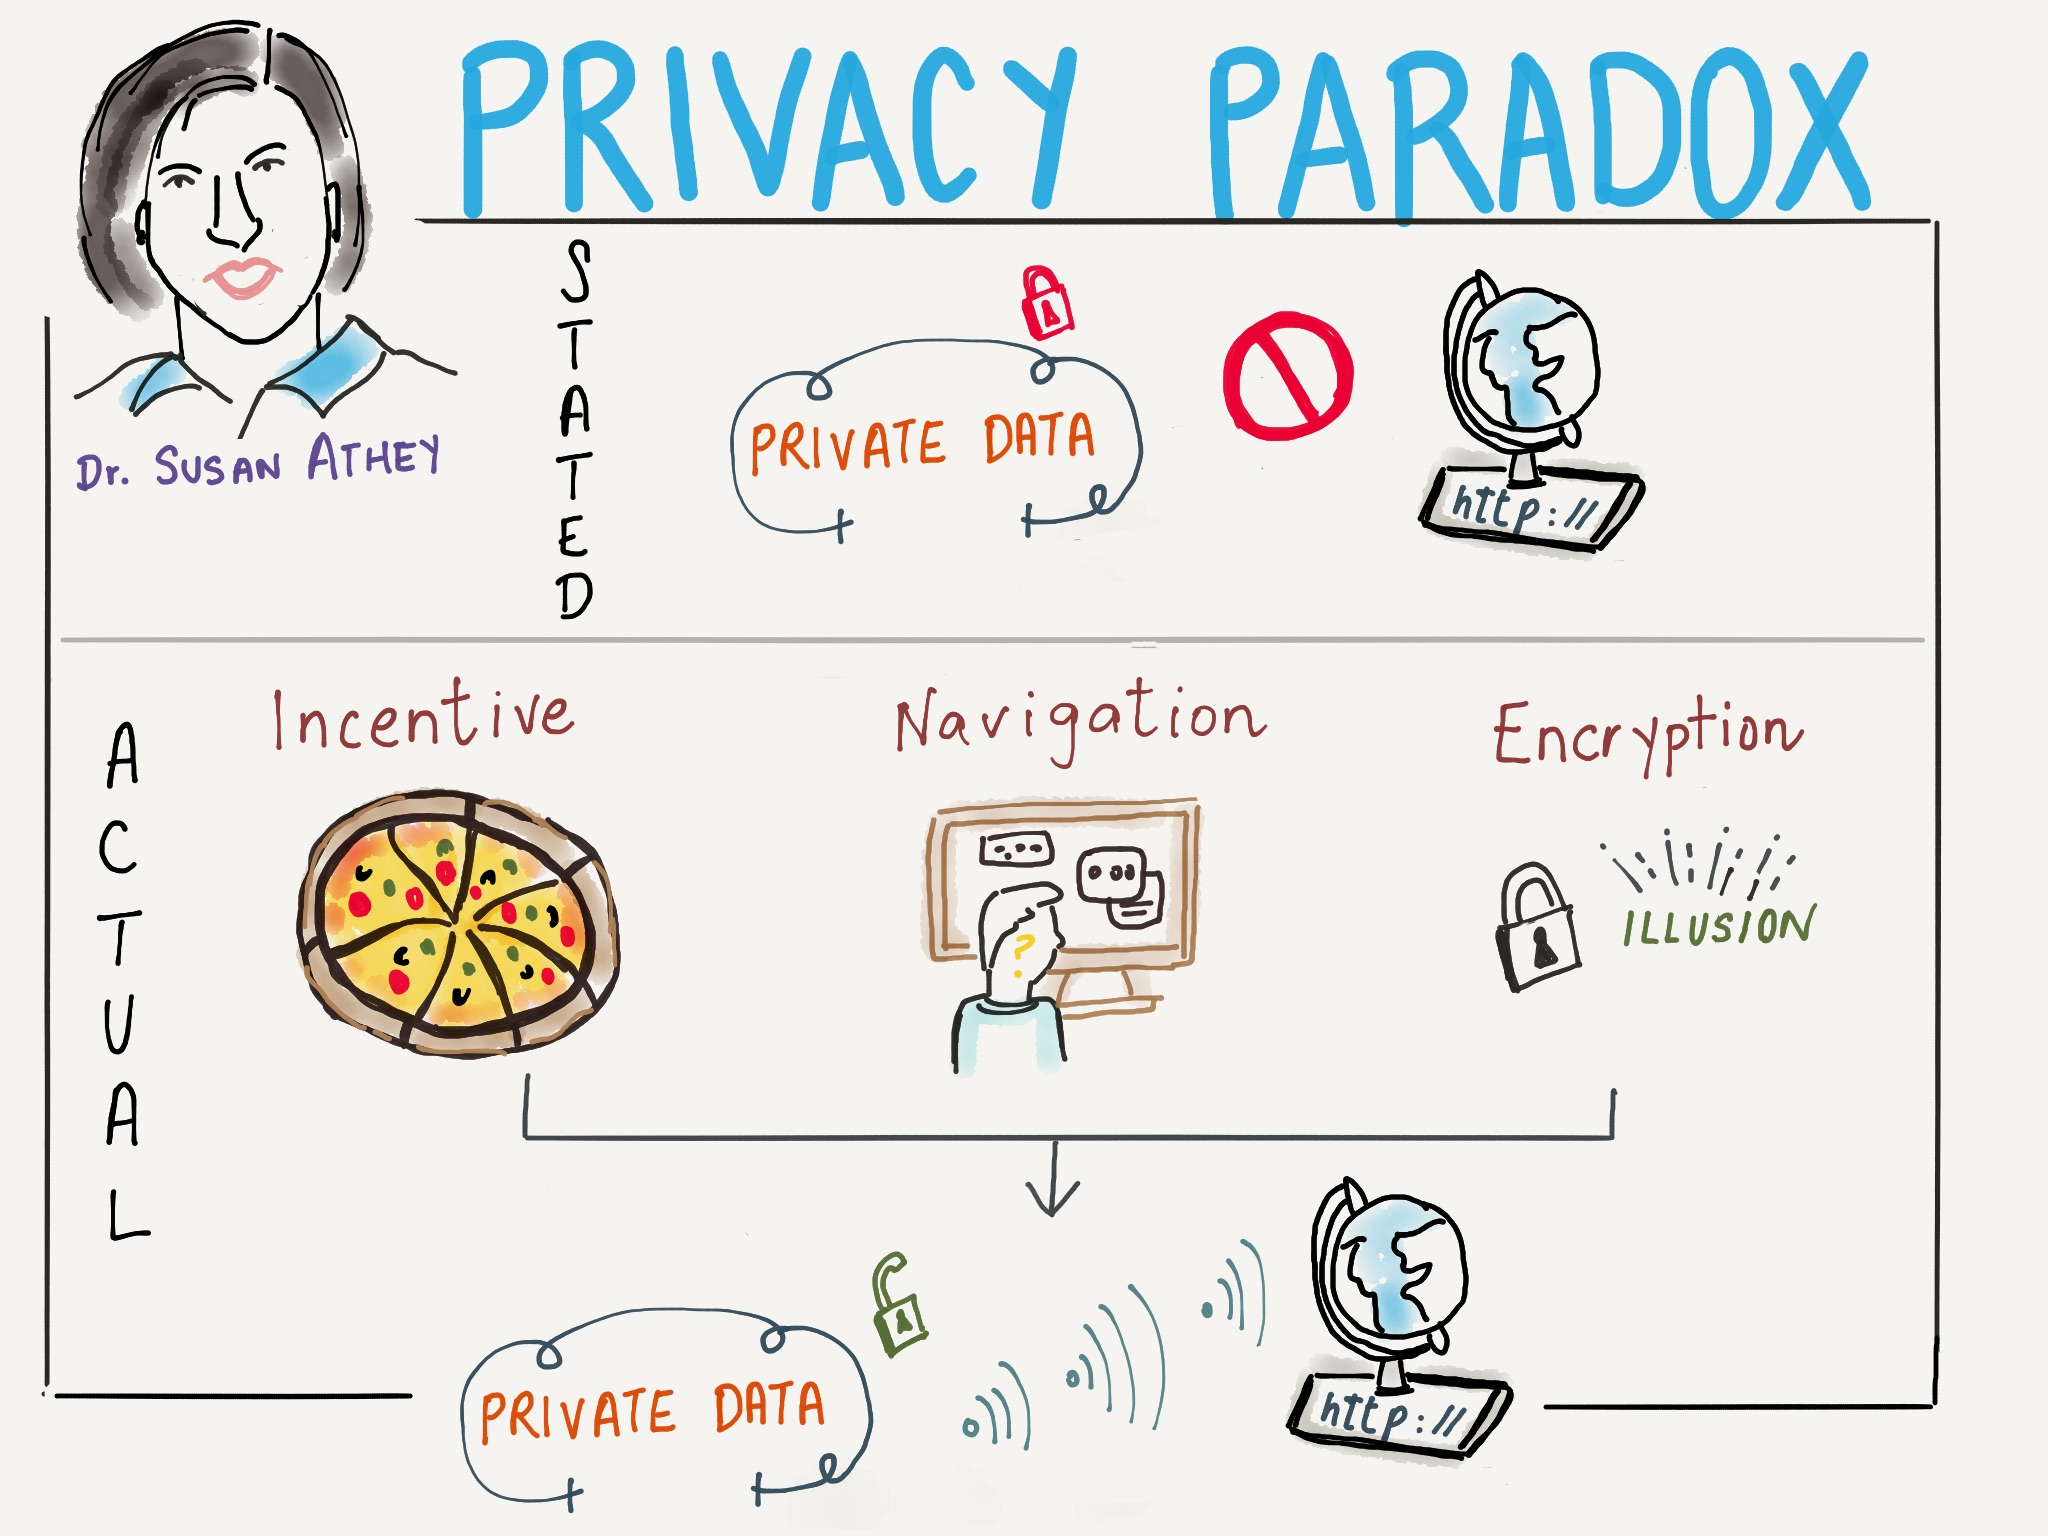 Pizza over privacy? Stanford economist examines a paradox ...